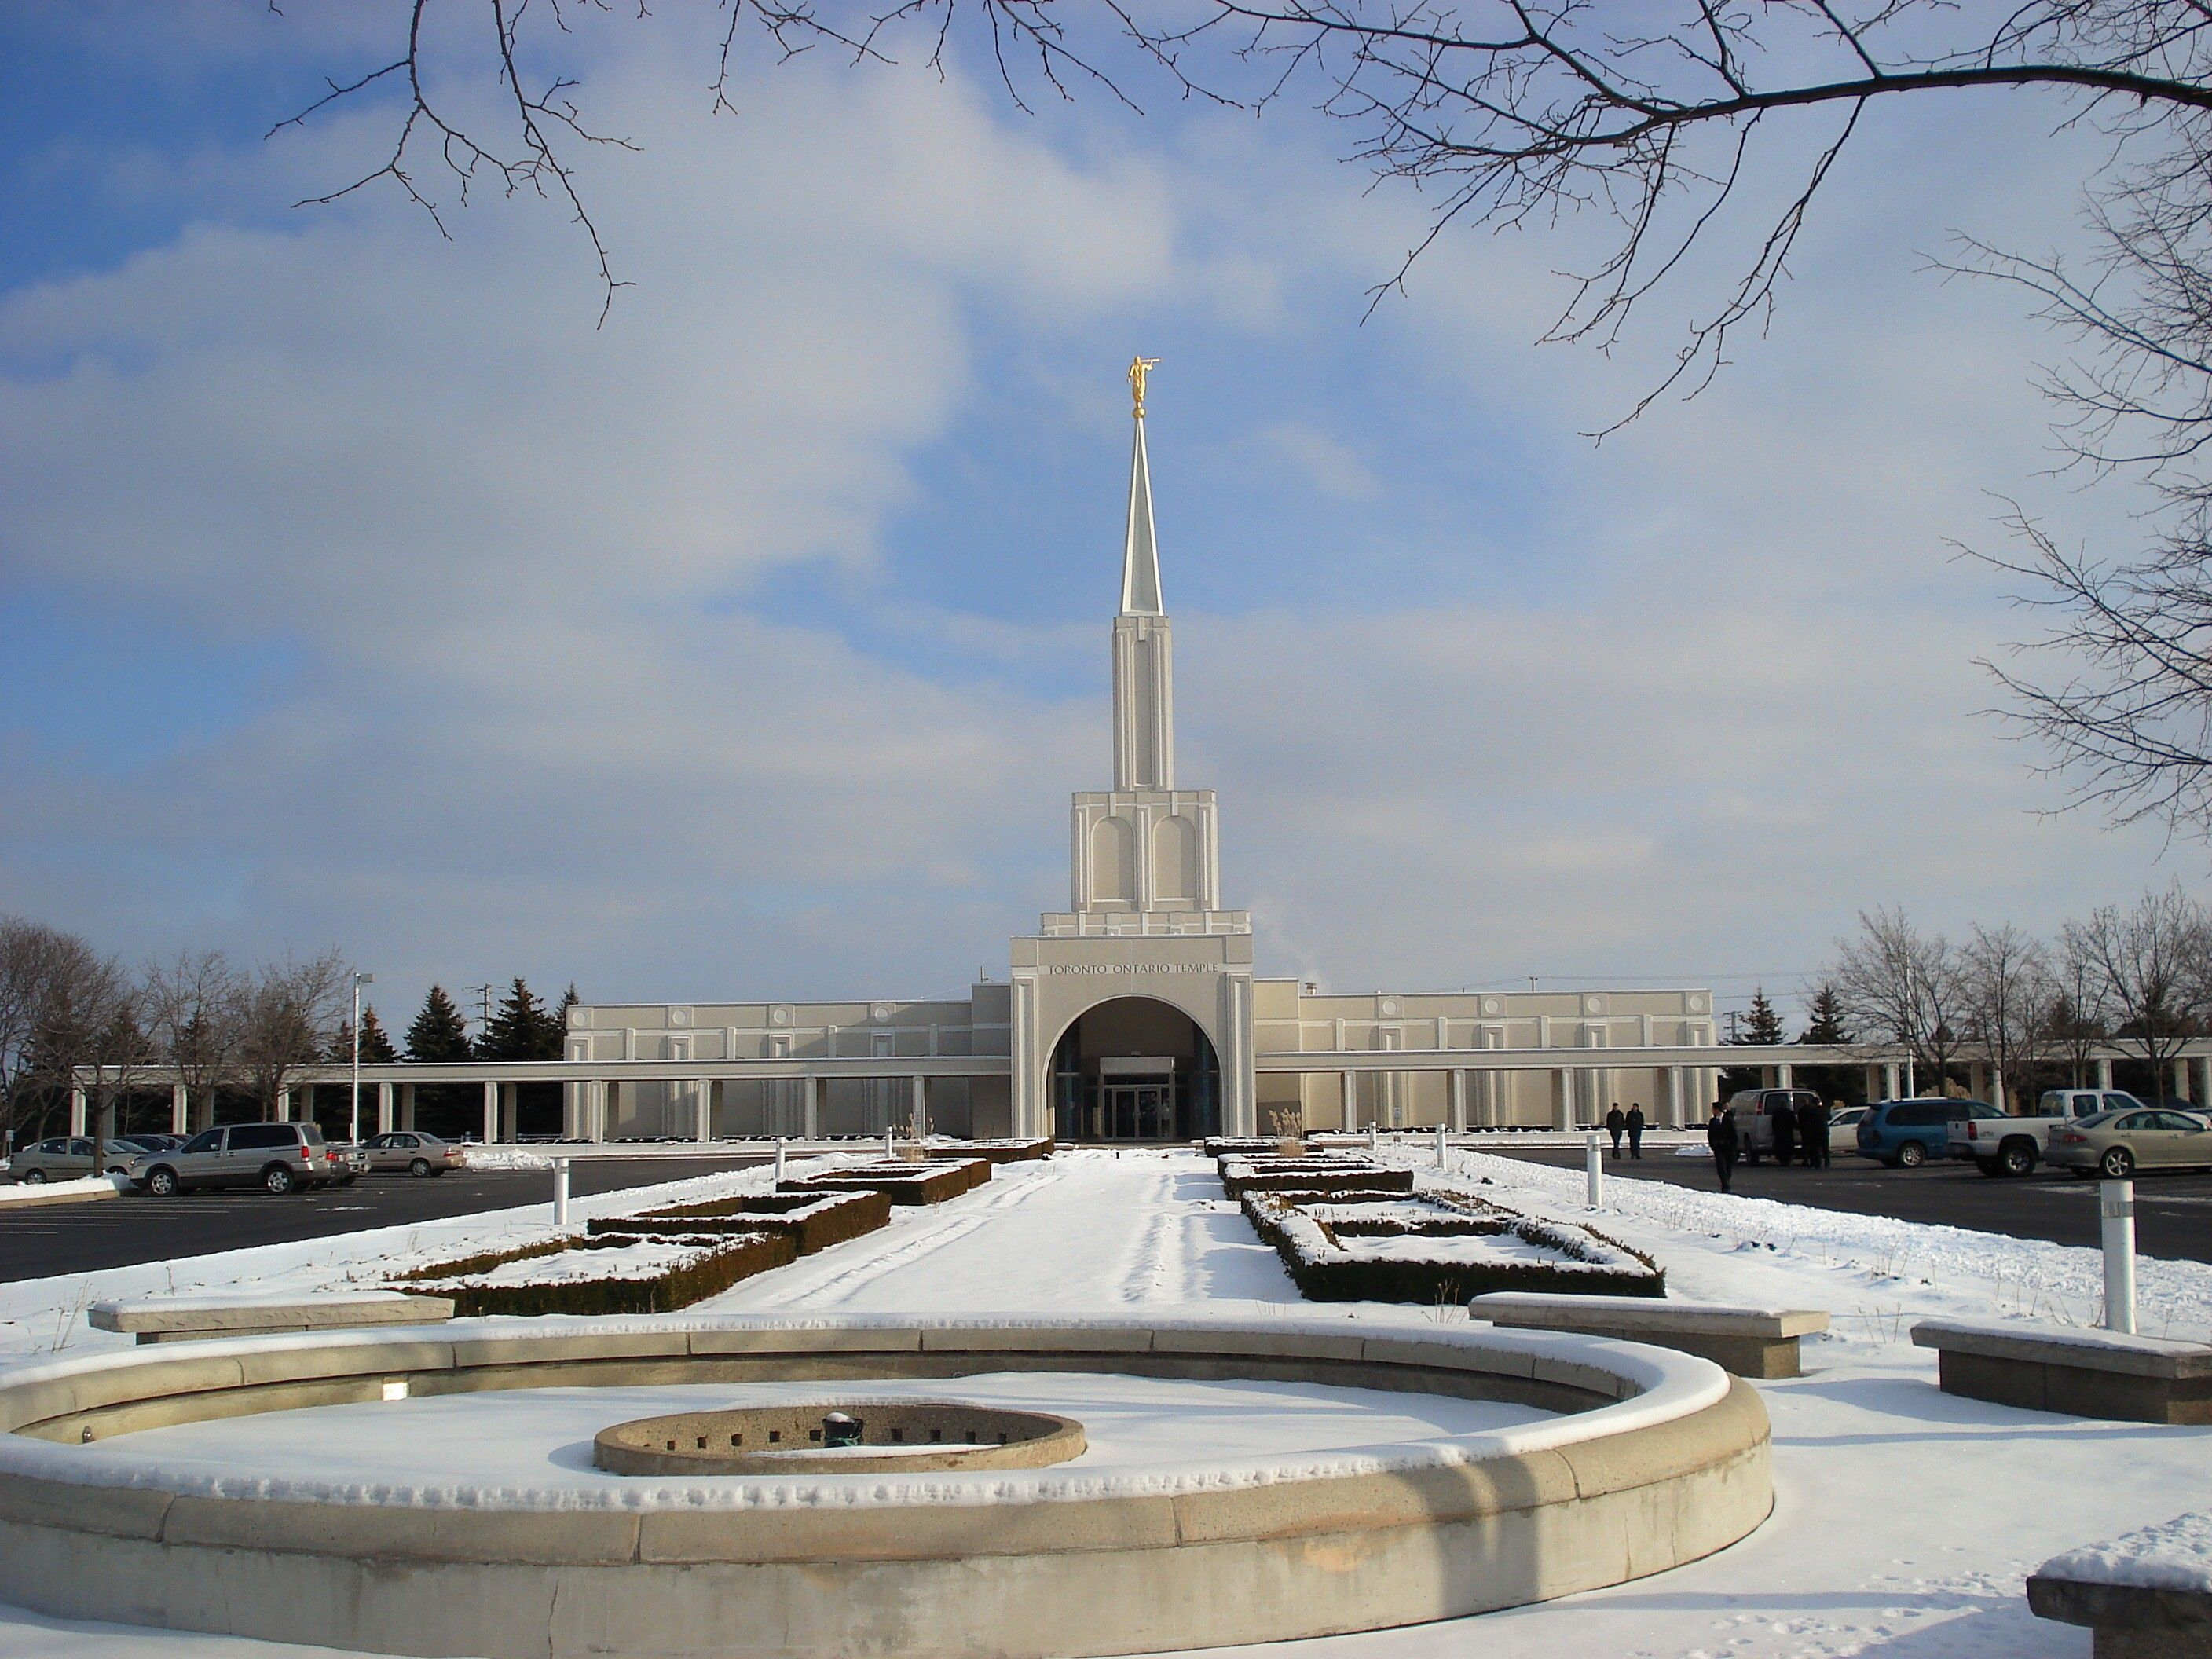 The Toronto Ontario Temple in the winter, including the fountain, entrance, and scenery.